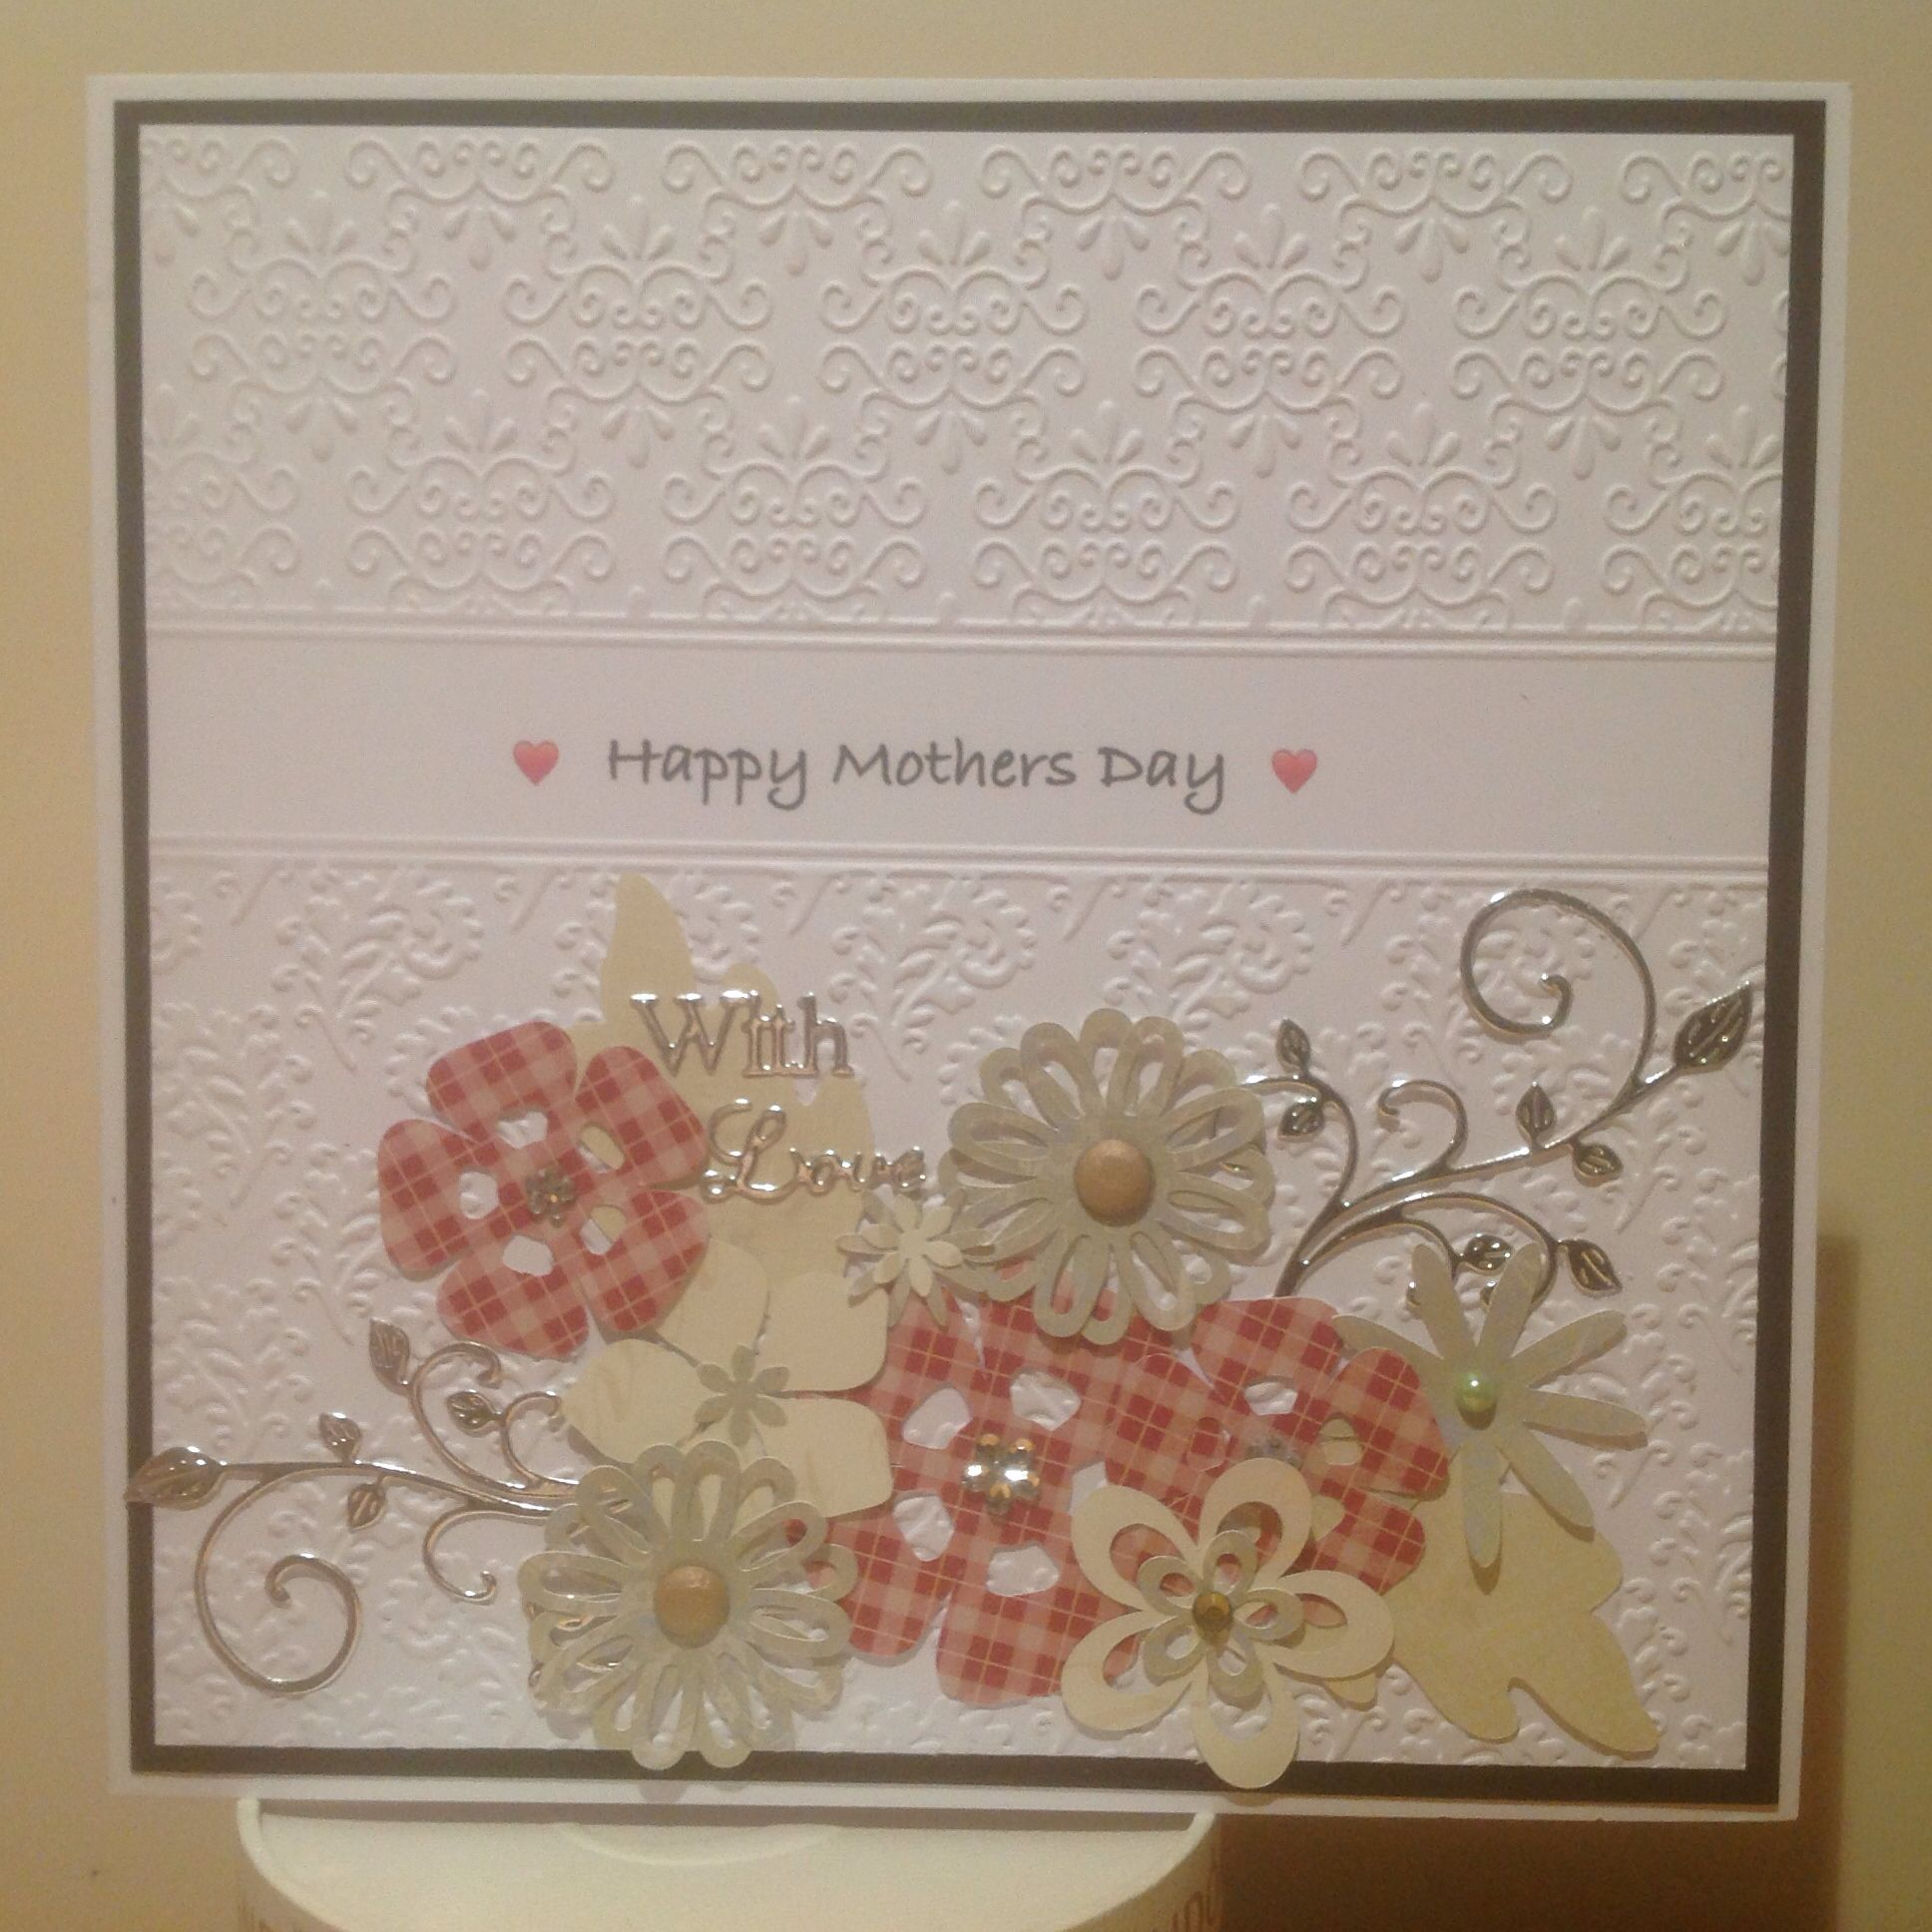 Mothers day card using mothers day bouquet cricut cartridge